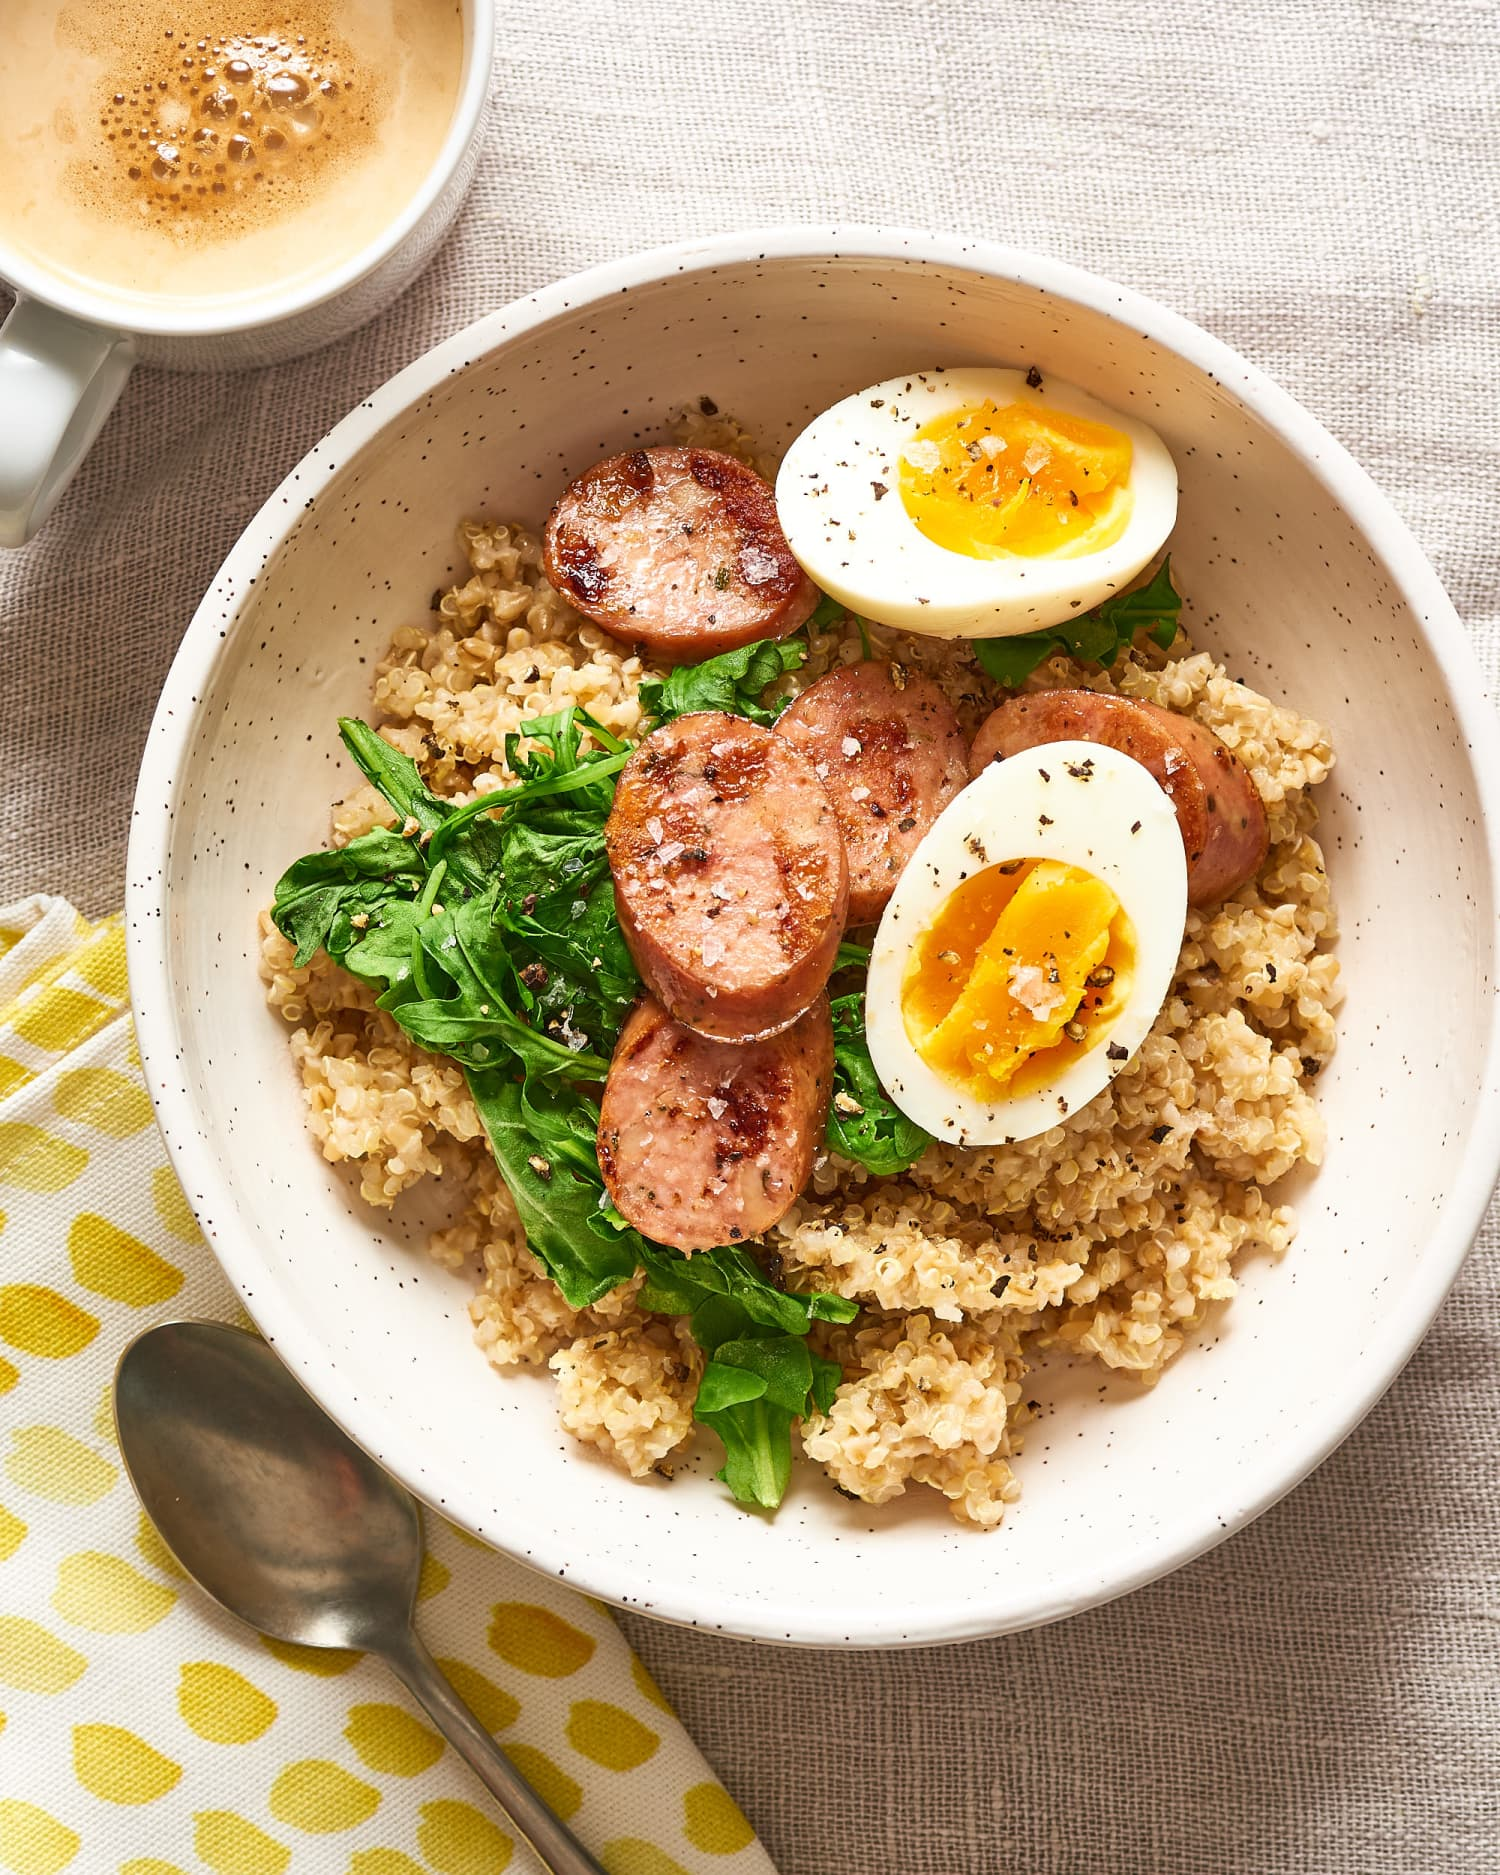 7 High-Protein Breakfast Recipes You Can Make the Night Before